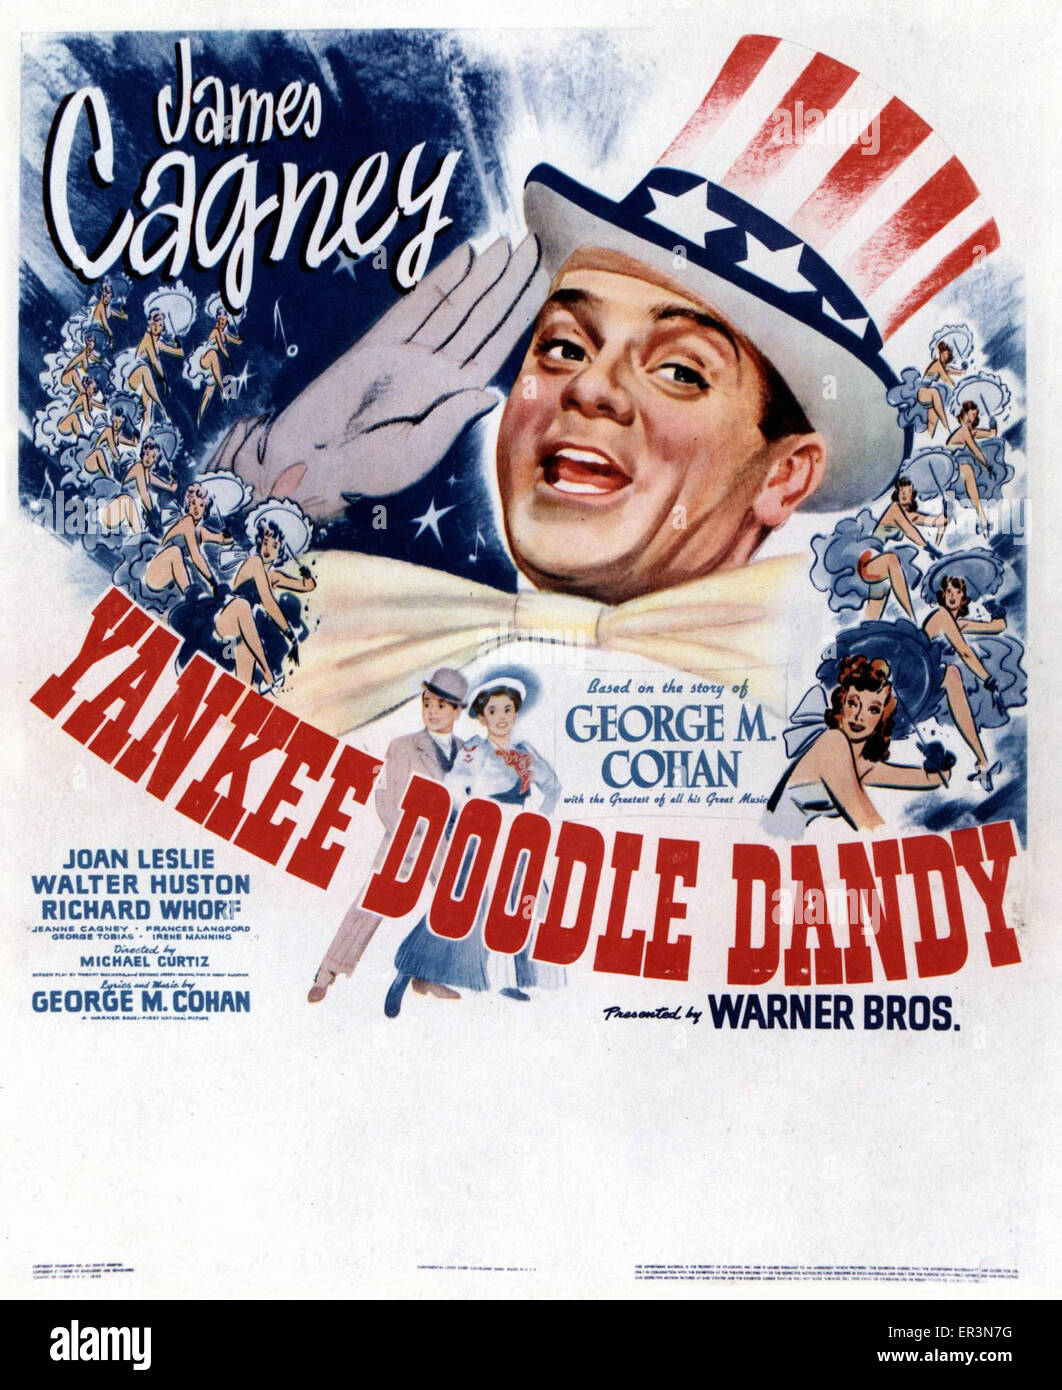 Yankee Doodle Dandy - Movie Poster Photo Stock